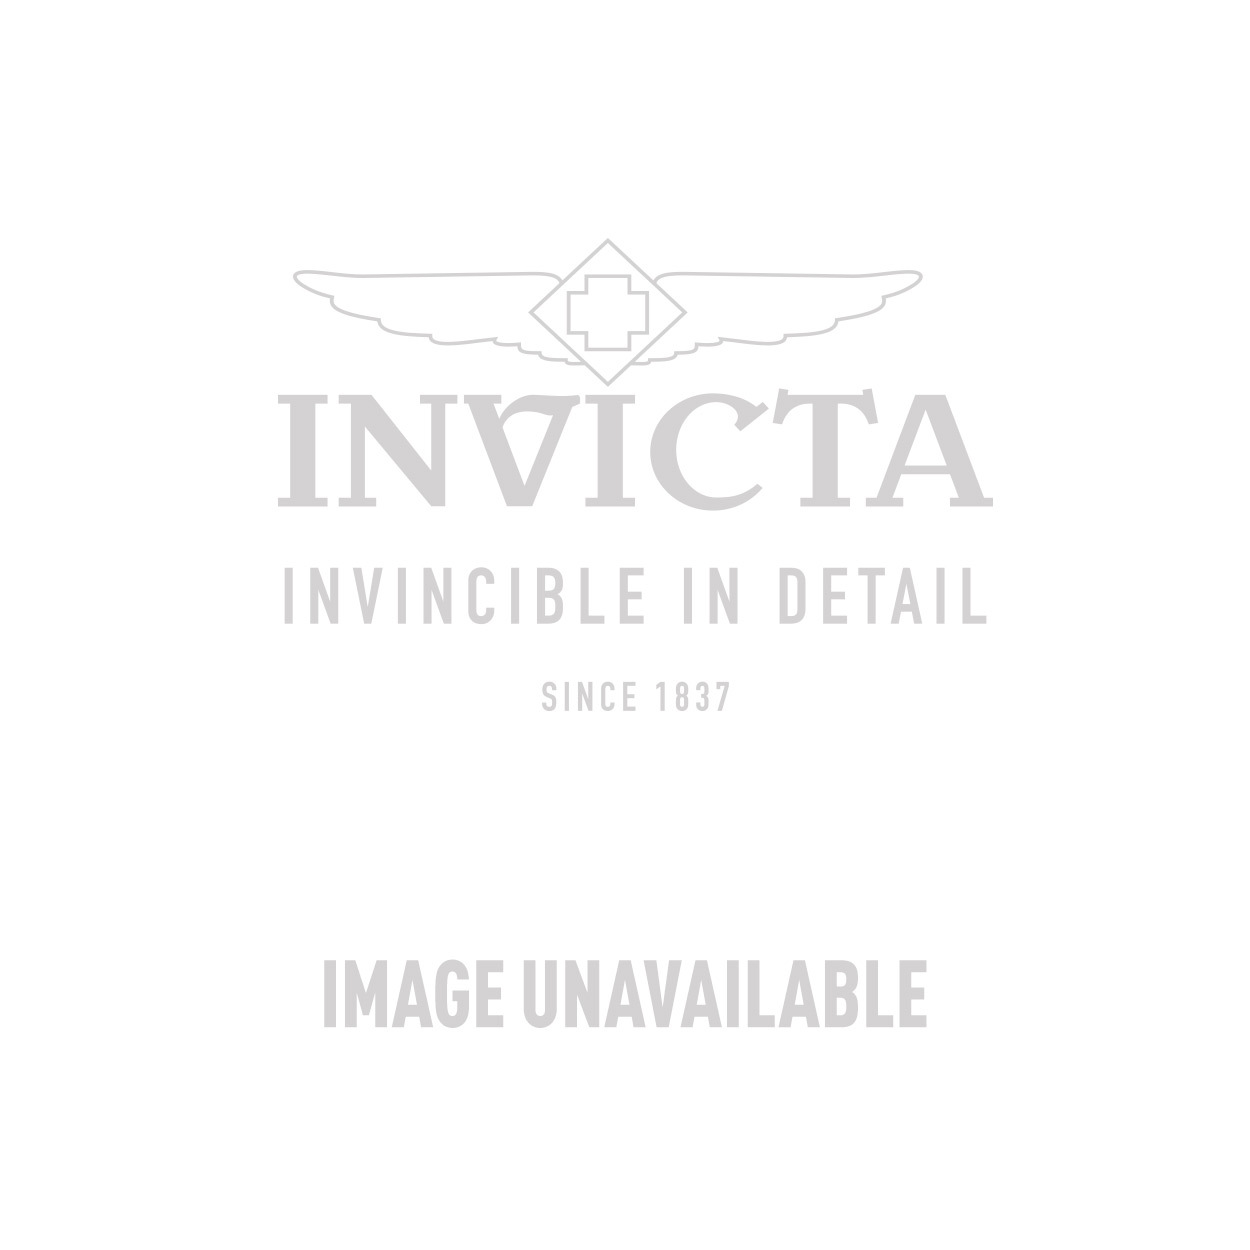 INVICTA Jewelry Incanto Earrings None 15 Silver 925 Chocolate+Yellow Gold - Model J0071